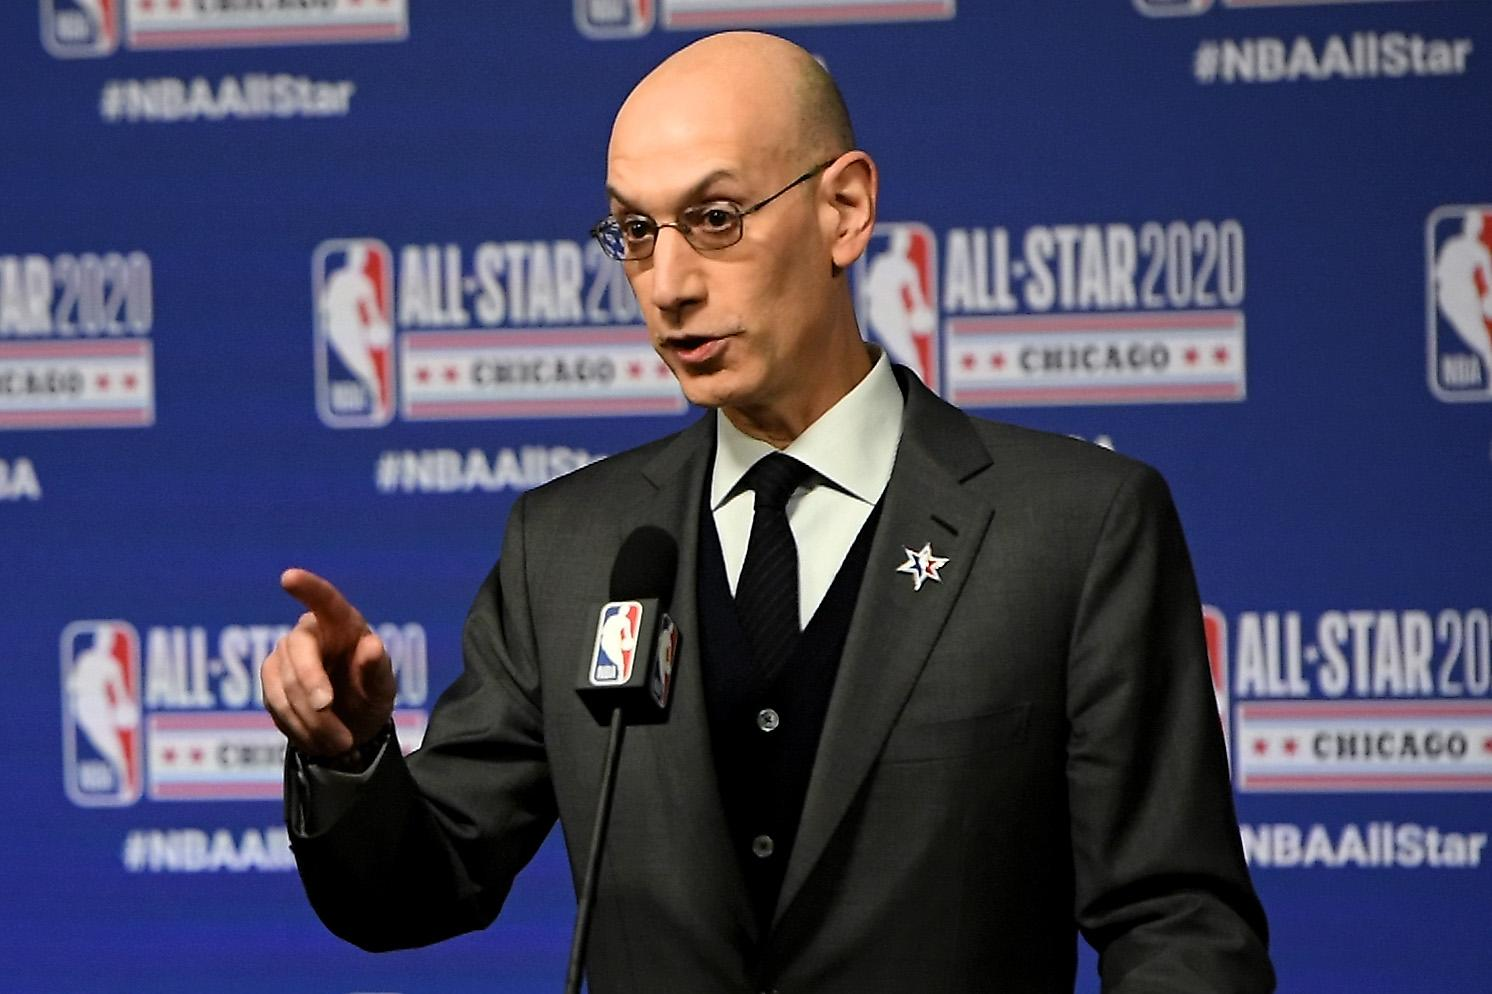 NBA commissioner Adam Silver: 'Best guess' next season will not start until at least January